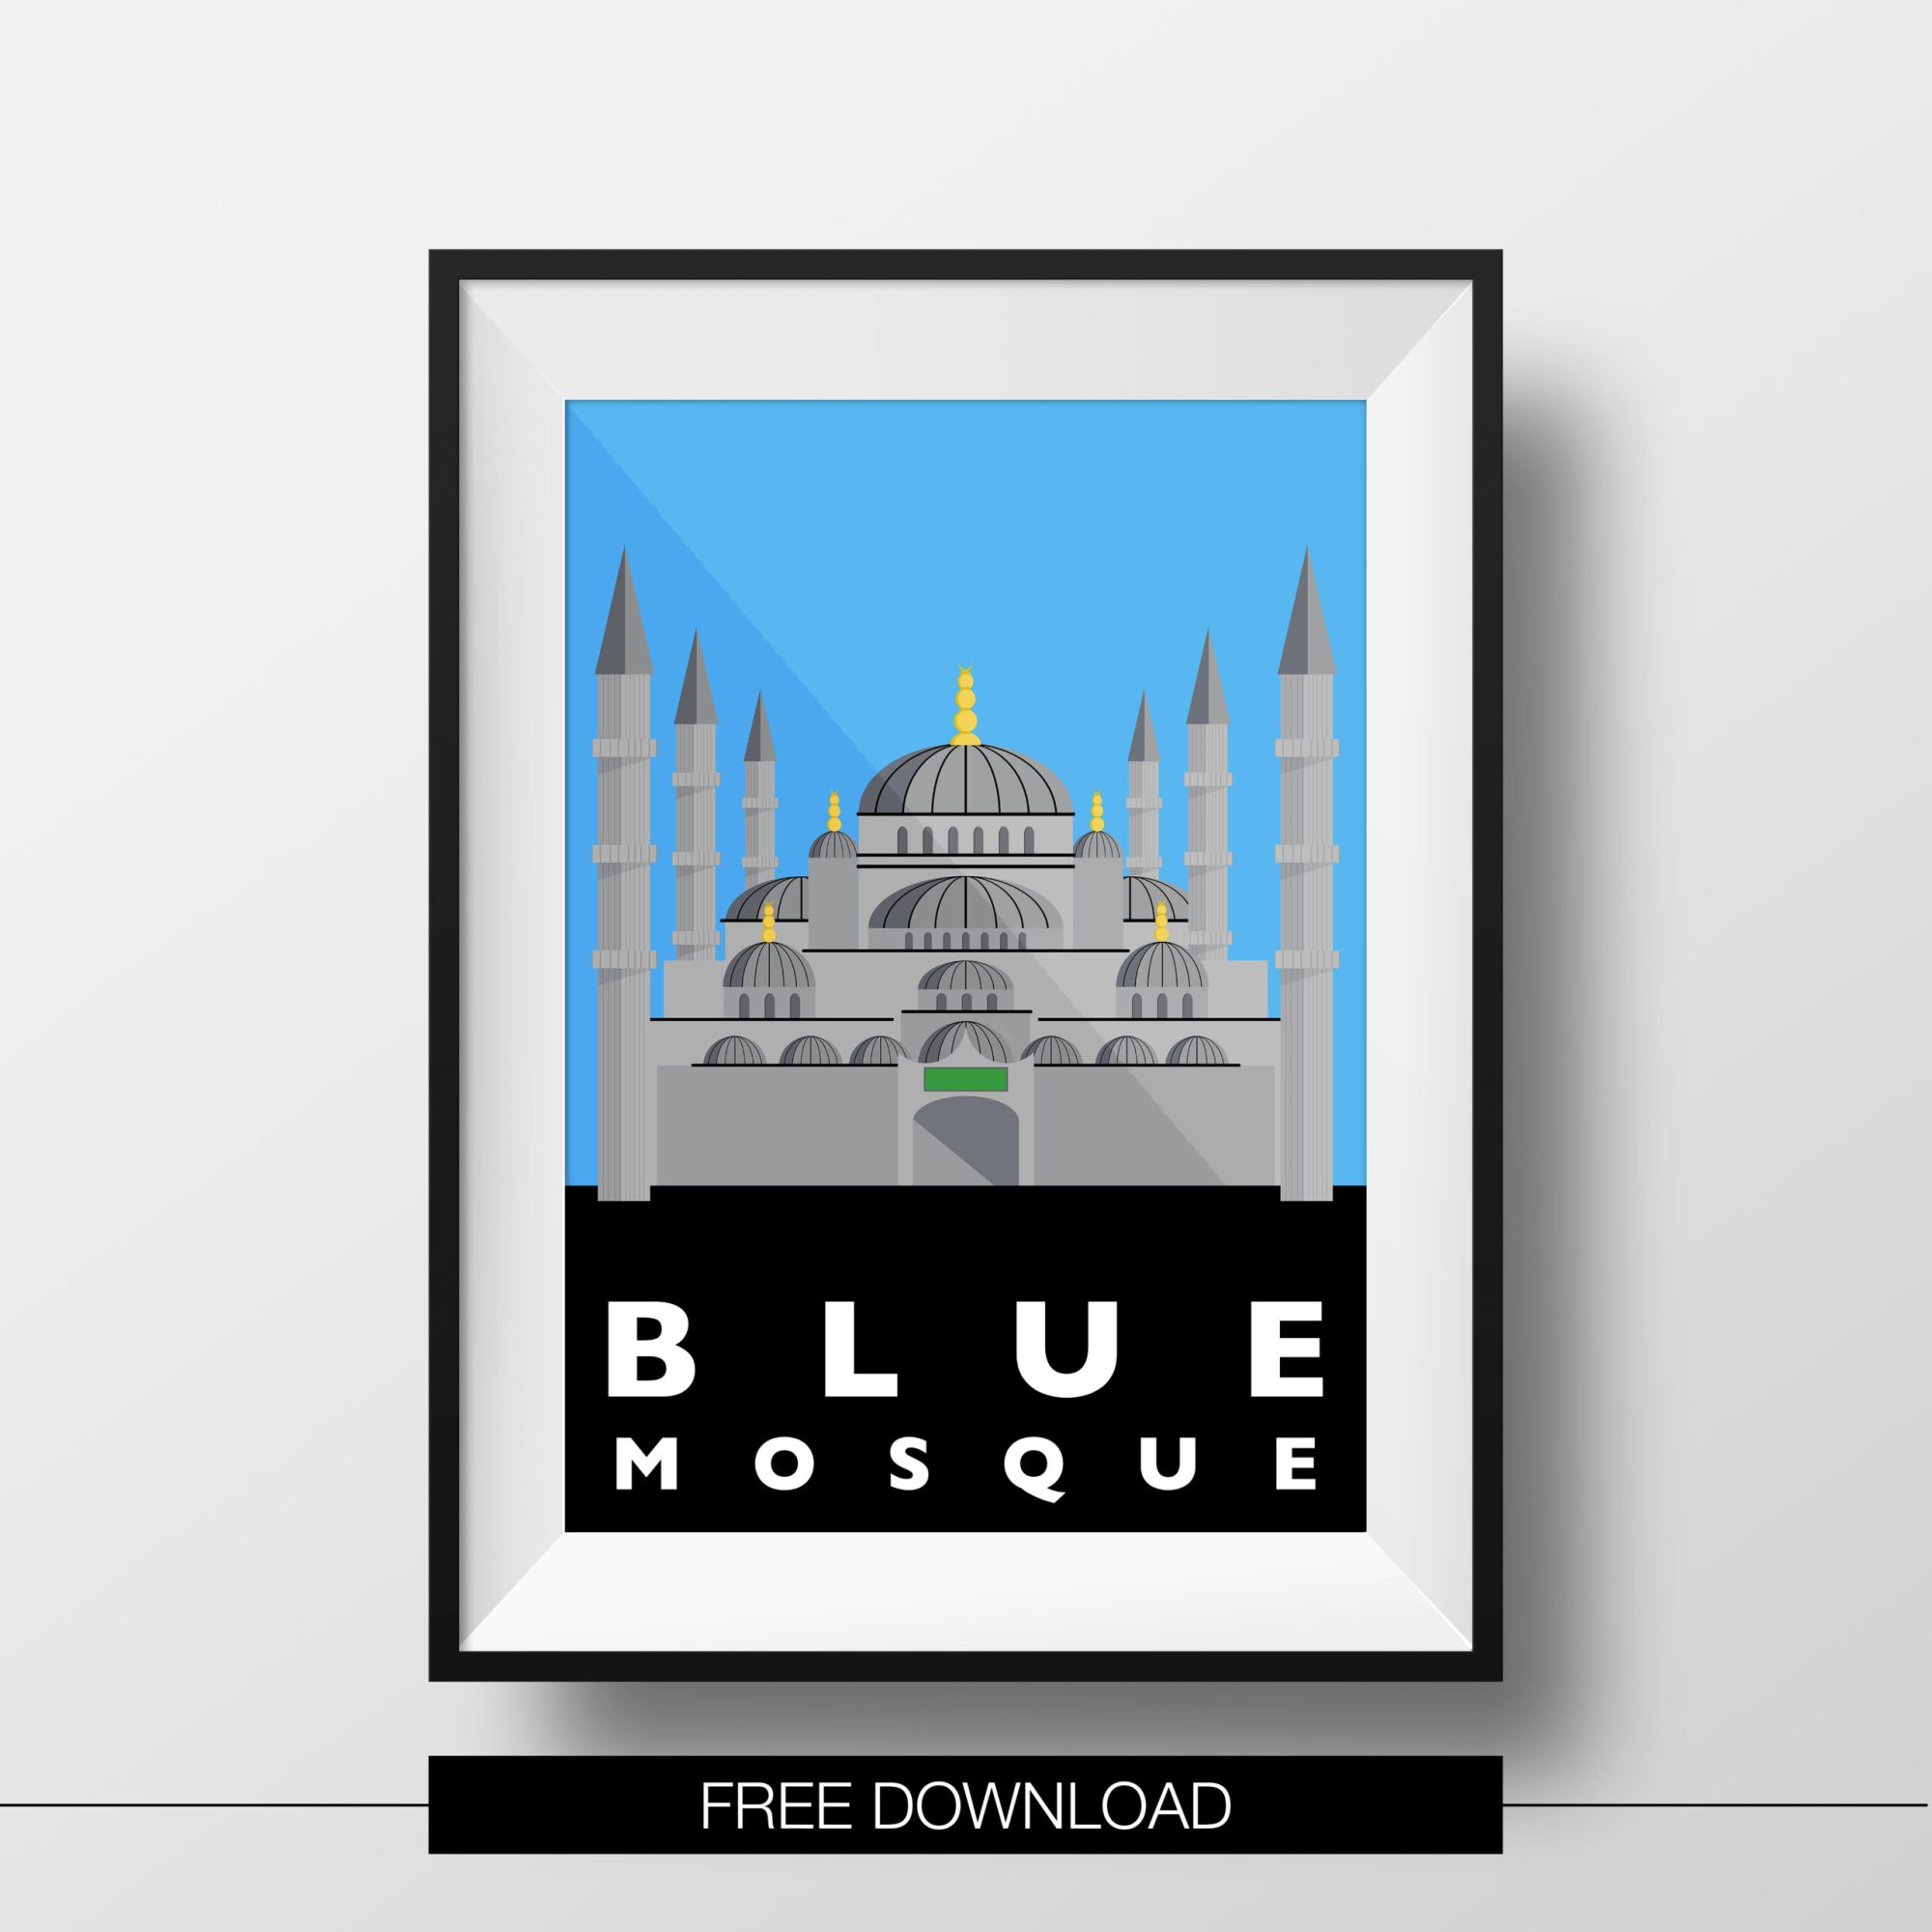 poster-istanbul-landmarks-blue-mosque-free-download